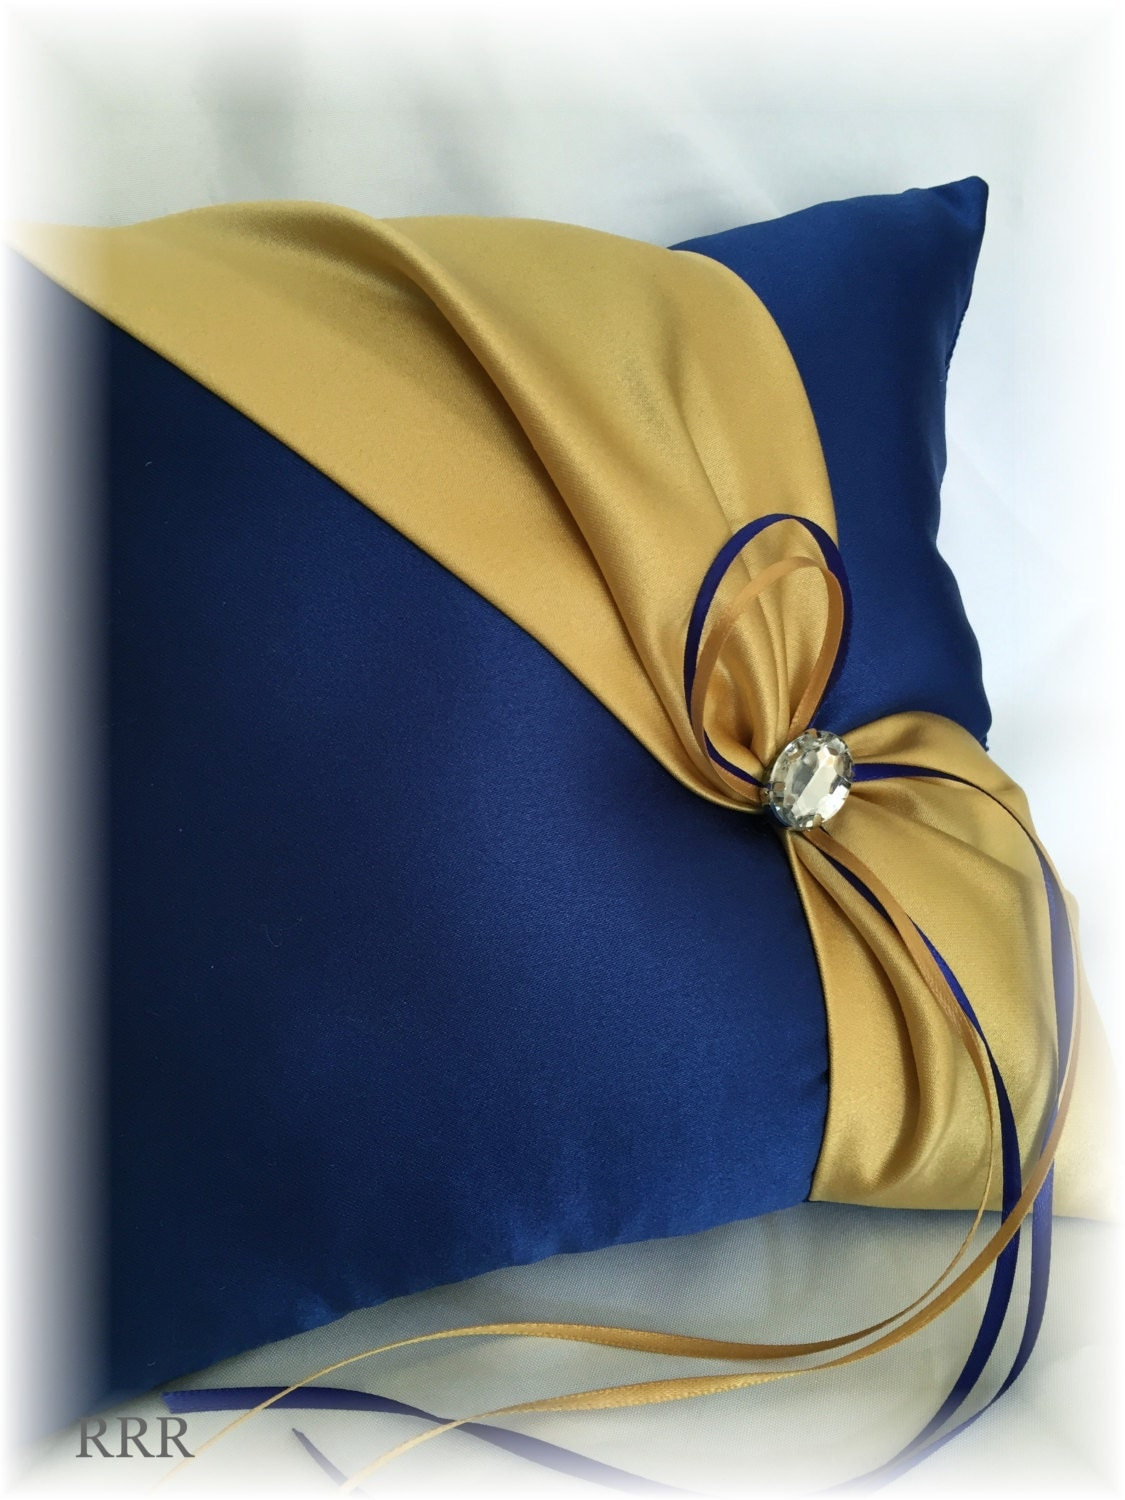 Royal Blue and Gold Wedding Ring Pillow Blue Wedding by